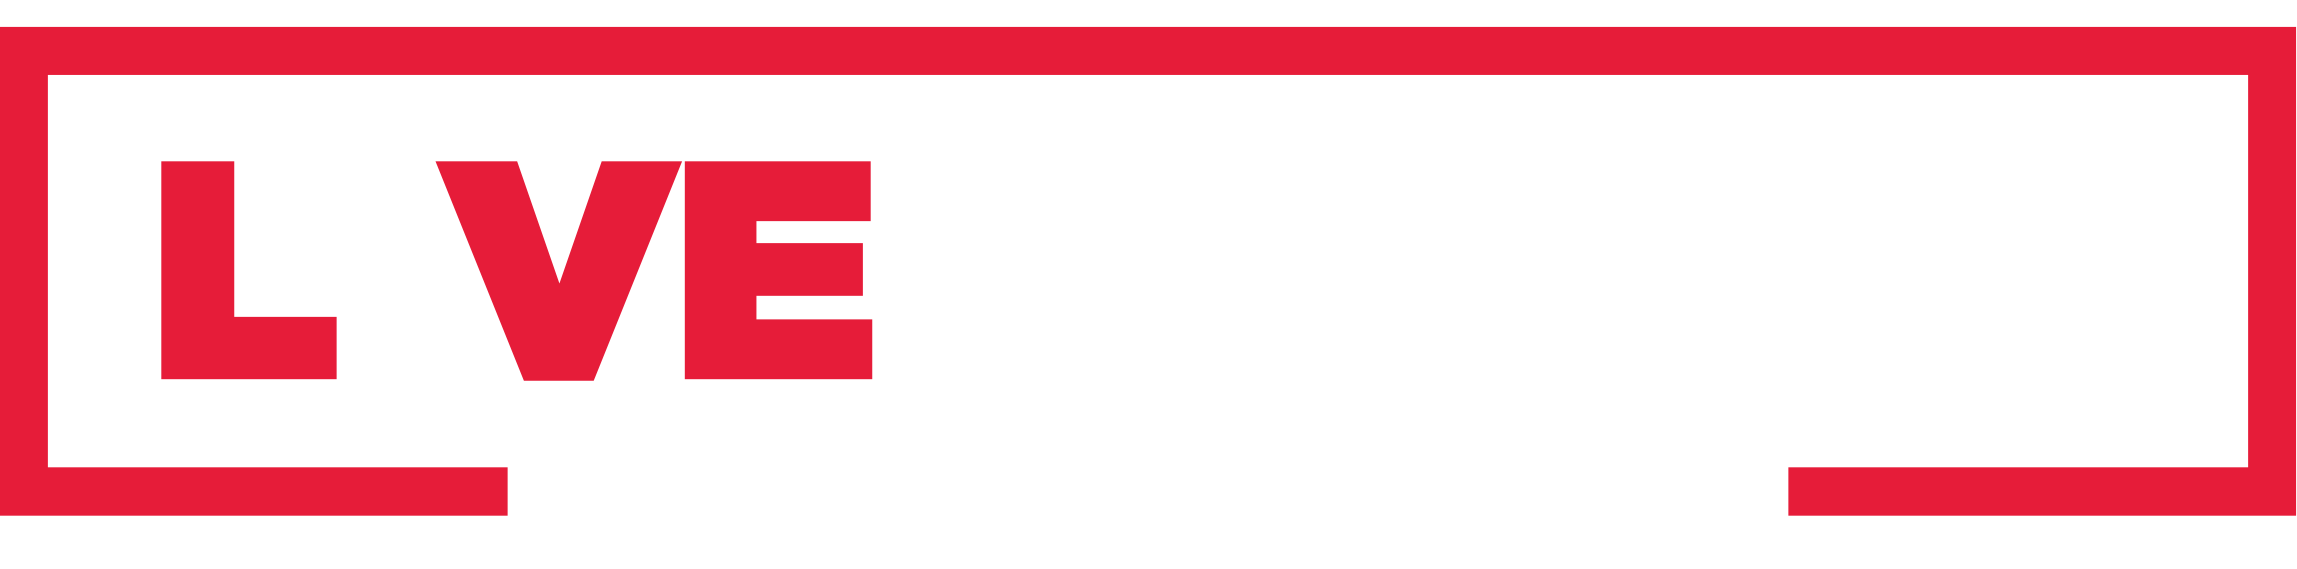 live nation png